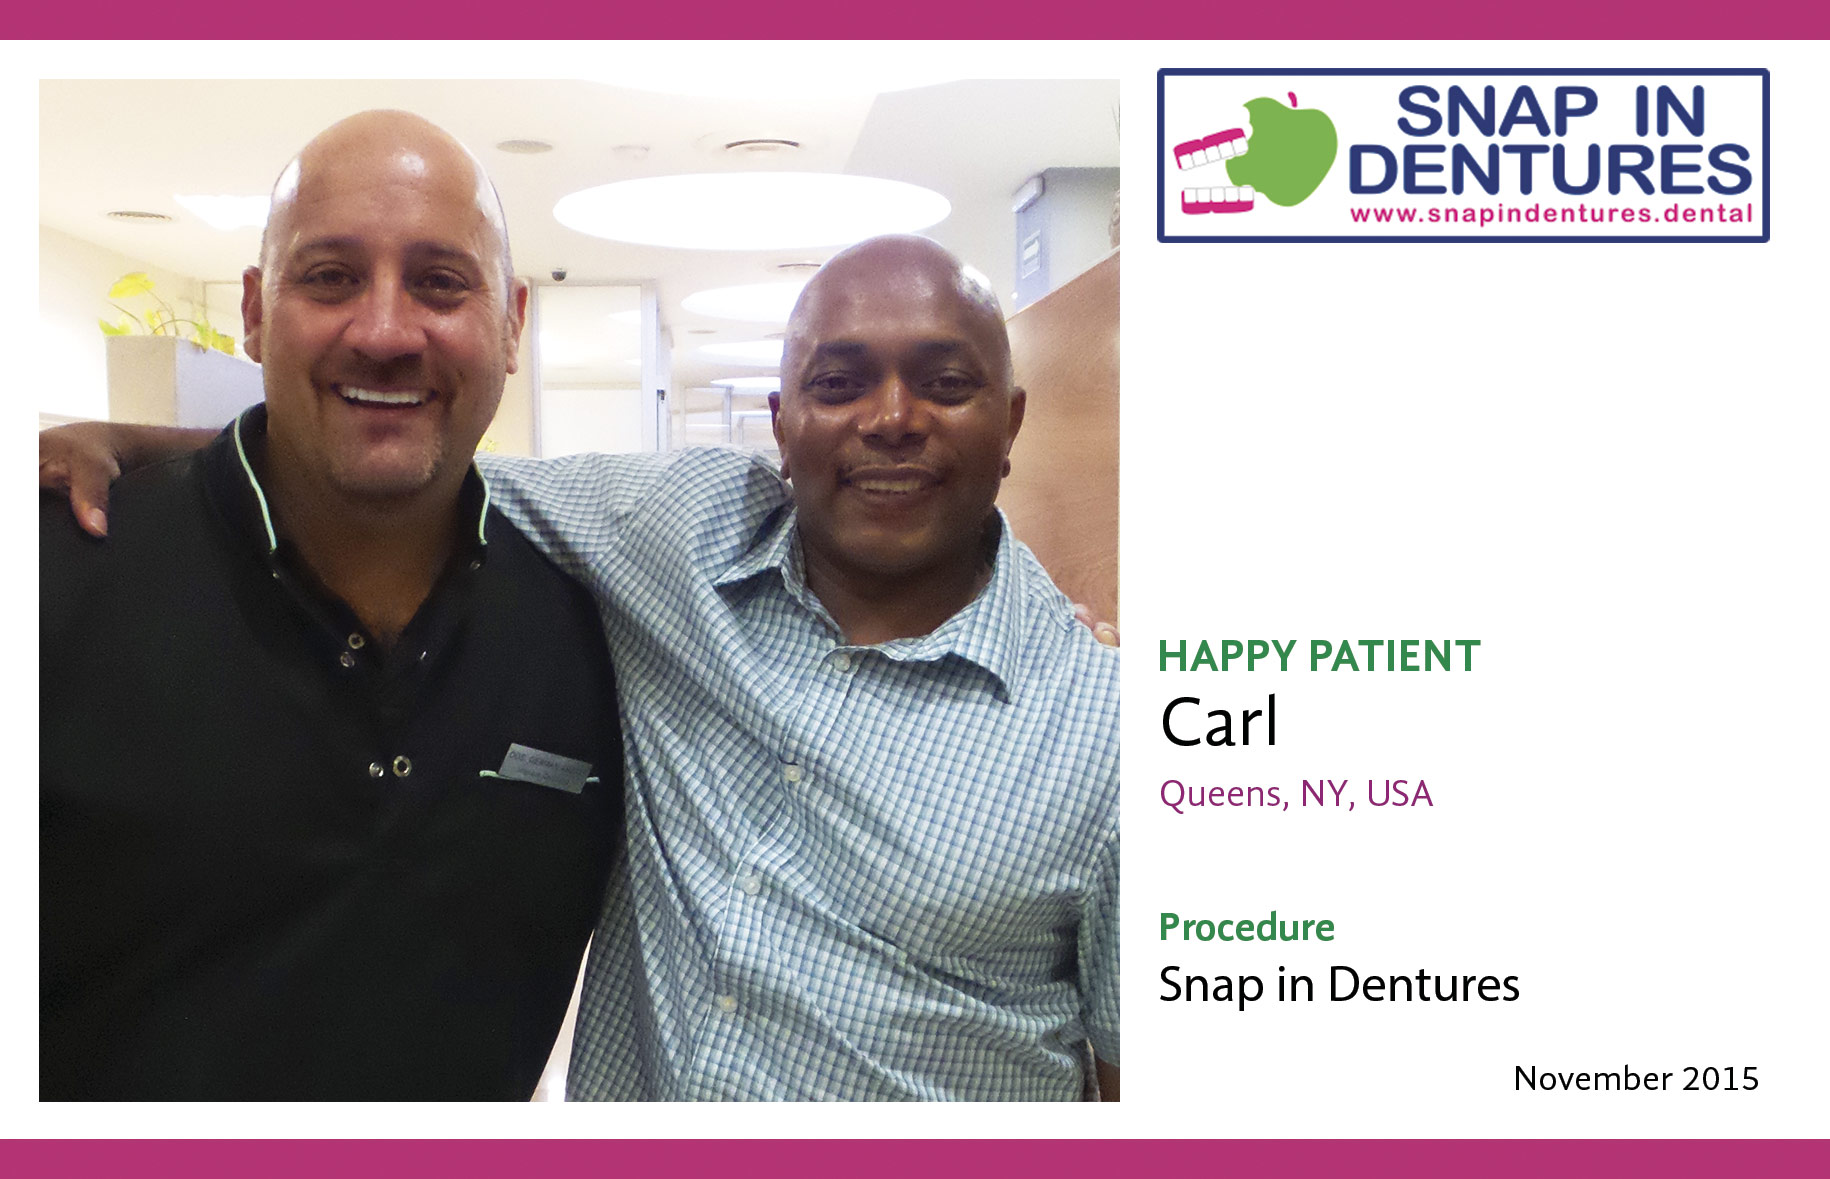 Snap in Dentures: Happy Patient Carl!